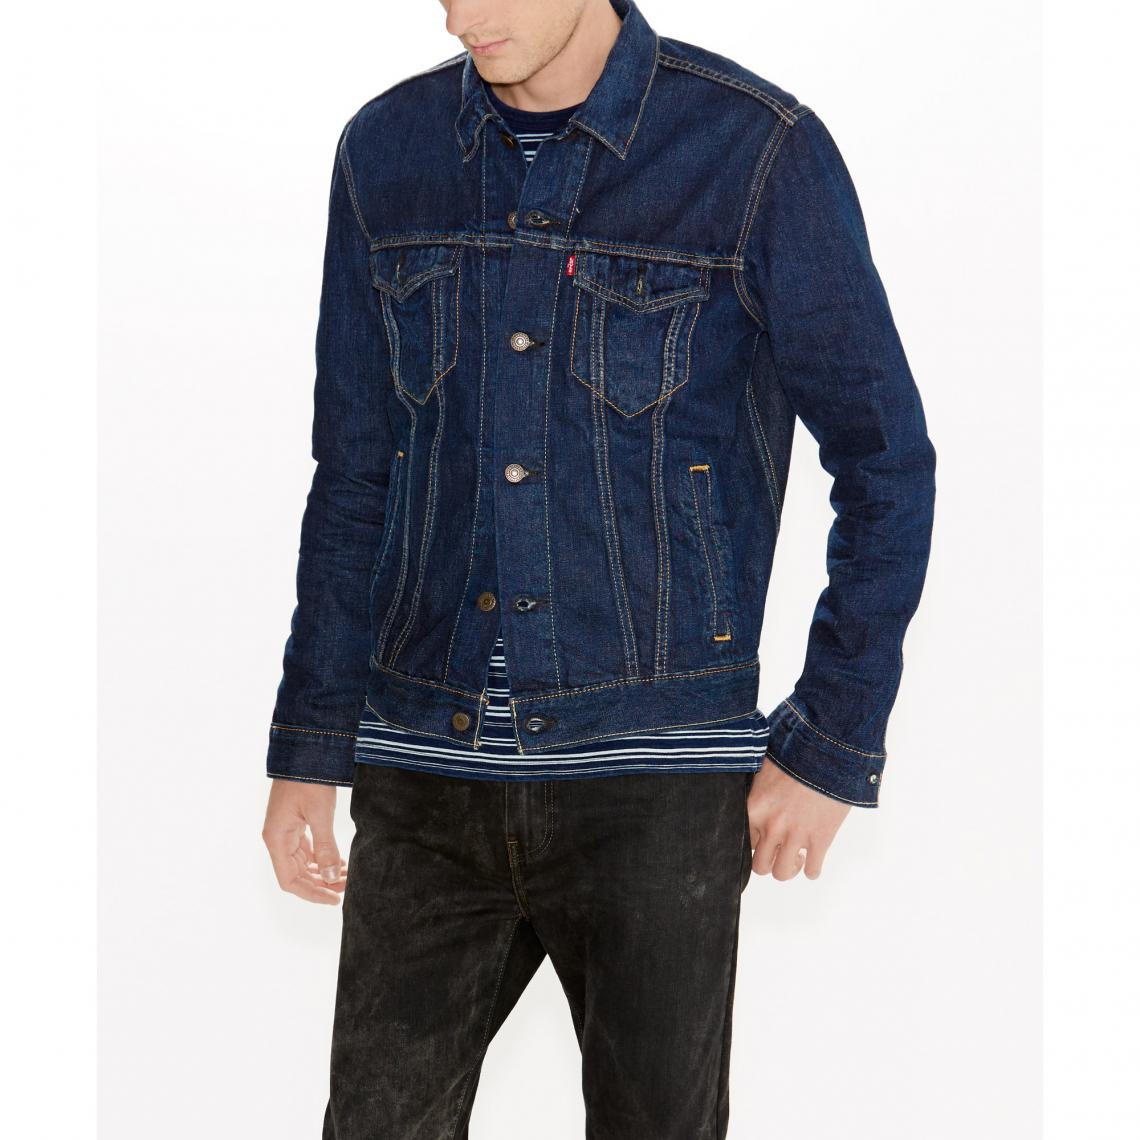 veste used trucker jacket levi 39 s pour homme bleu 3 suisses. Black Bedroom Furniture Sets. Home Design Ideas